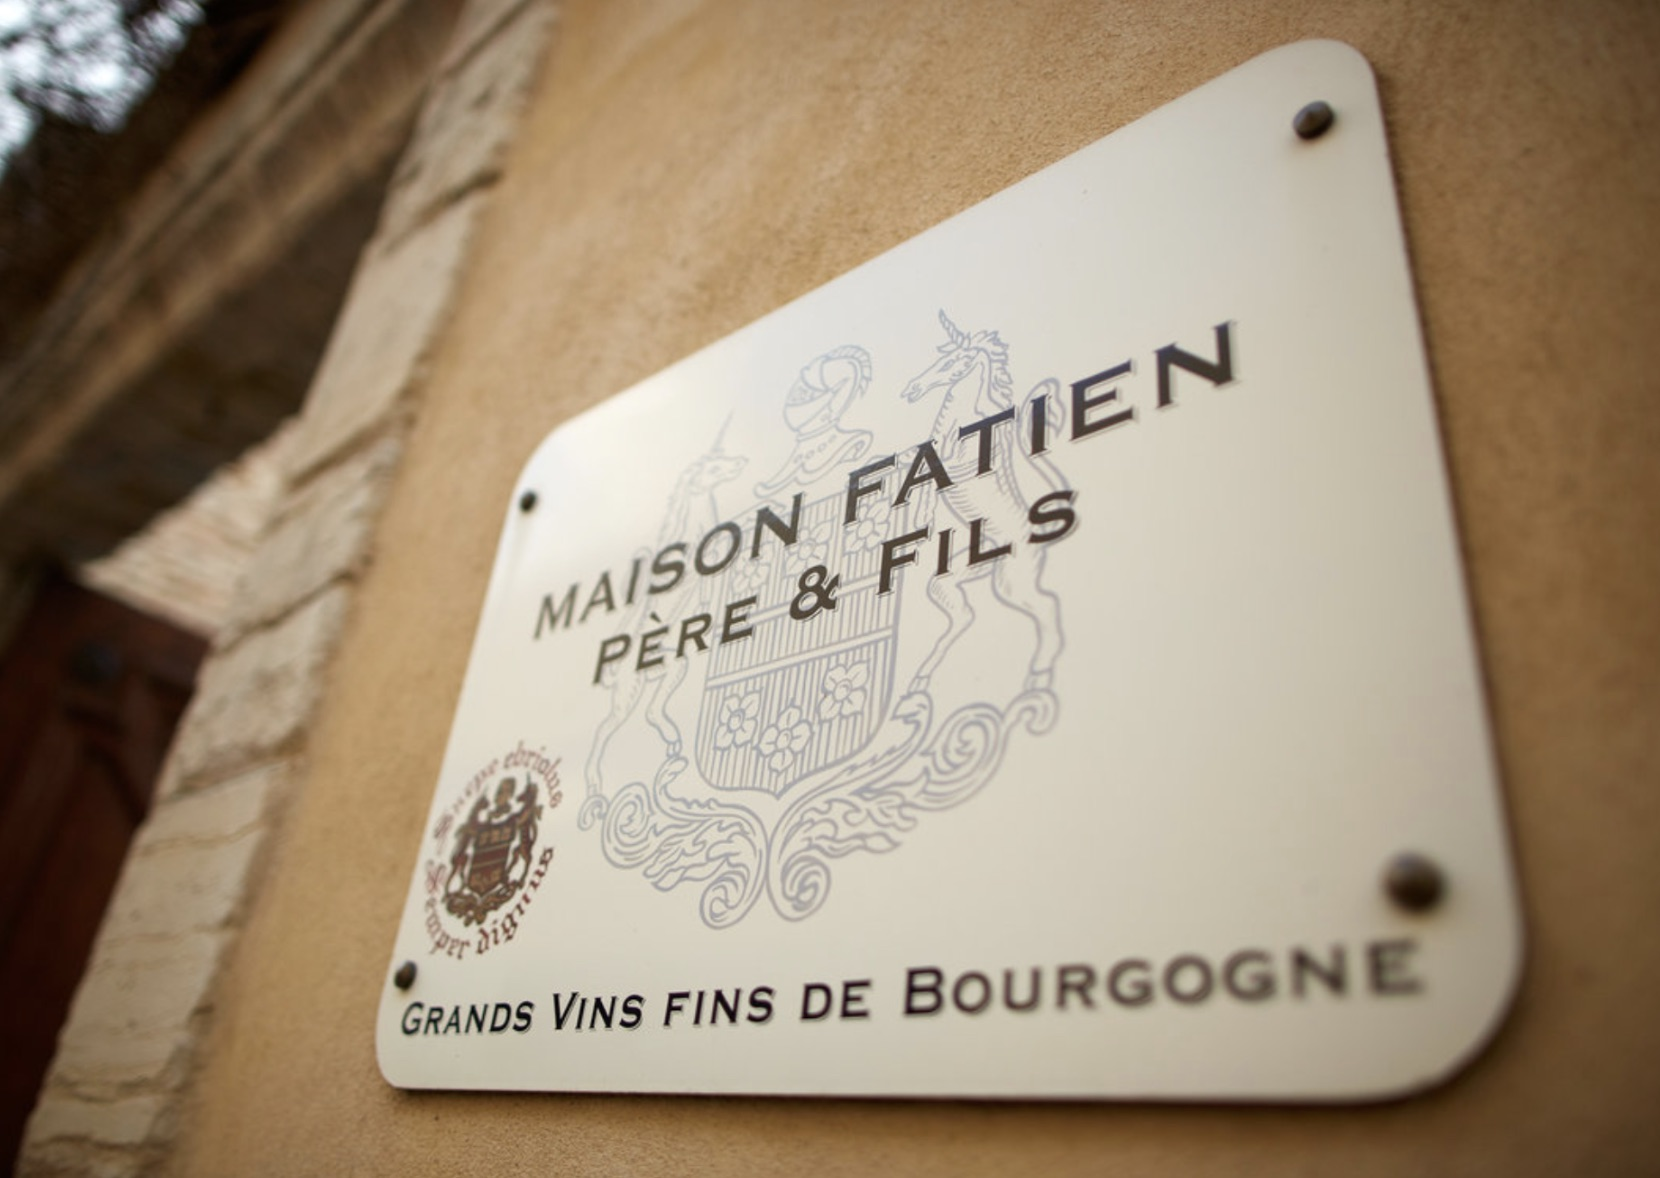 MAISON FATIEN PERE & FILS - The wines of Maison Fatien are produced from almost 4 hectares of vineyards, worked exclusively by Charly Fatien. The parcels are spread over prestigious appellations of the Cote de Beaune and the Cote de Nuits: Gevrey Chambertin, Beaune, Pommard and Volnay. Maison Fatien adds to its range by making an extremely judicious selection of additional grapes.